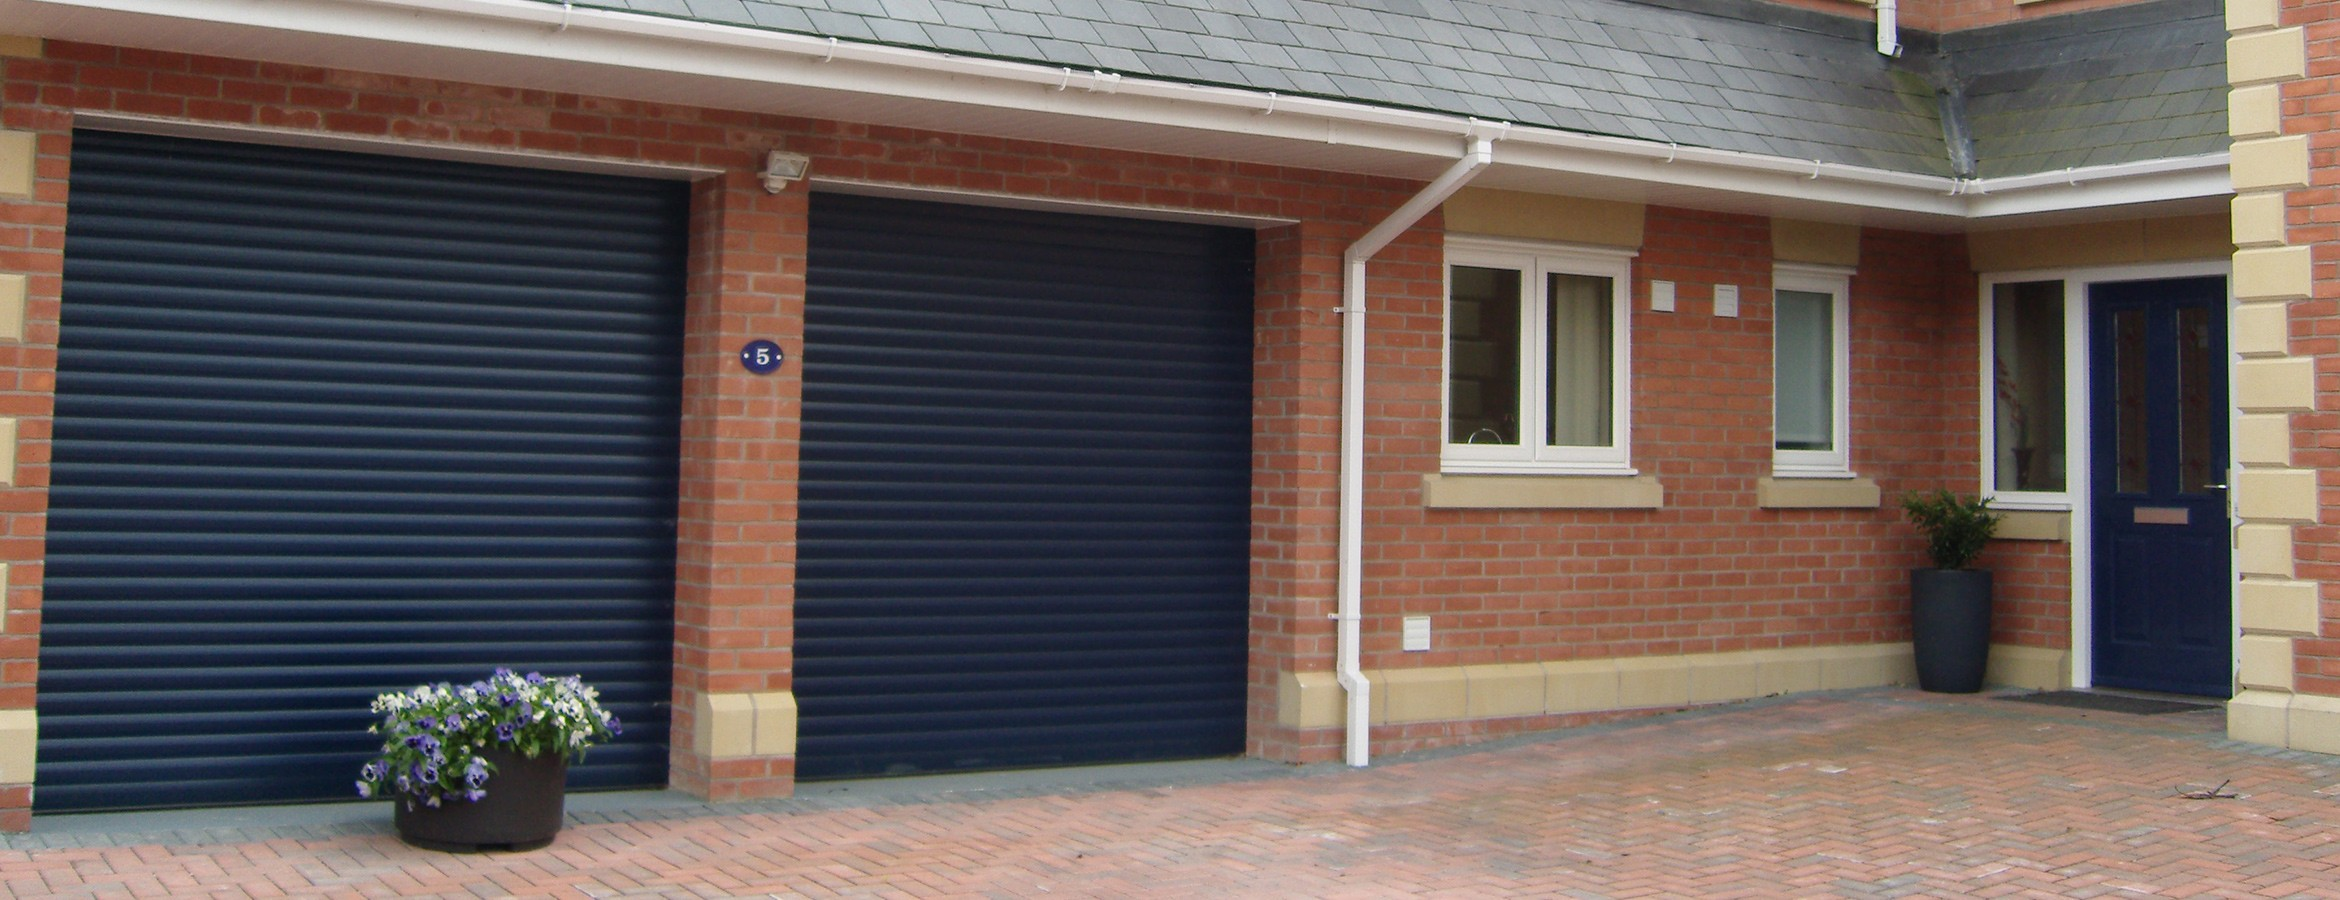 Mg Windows Systems Installers Of Electric Roller Garage Doors In